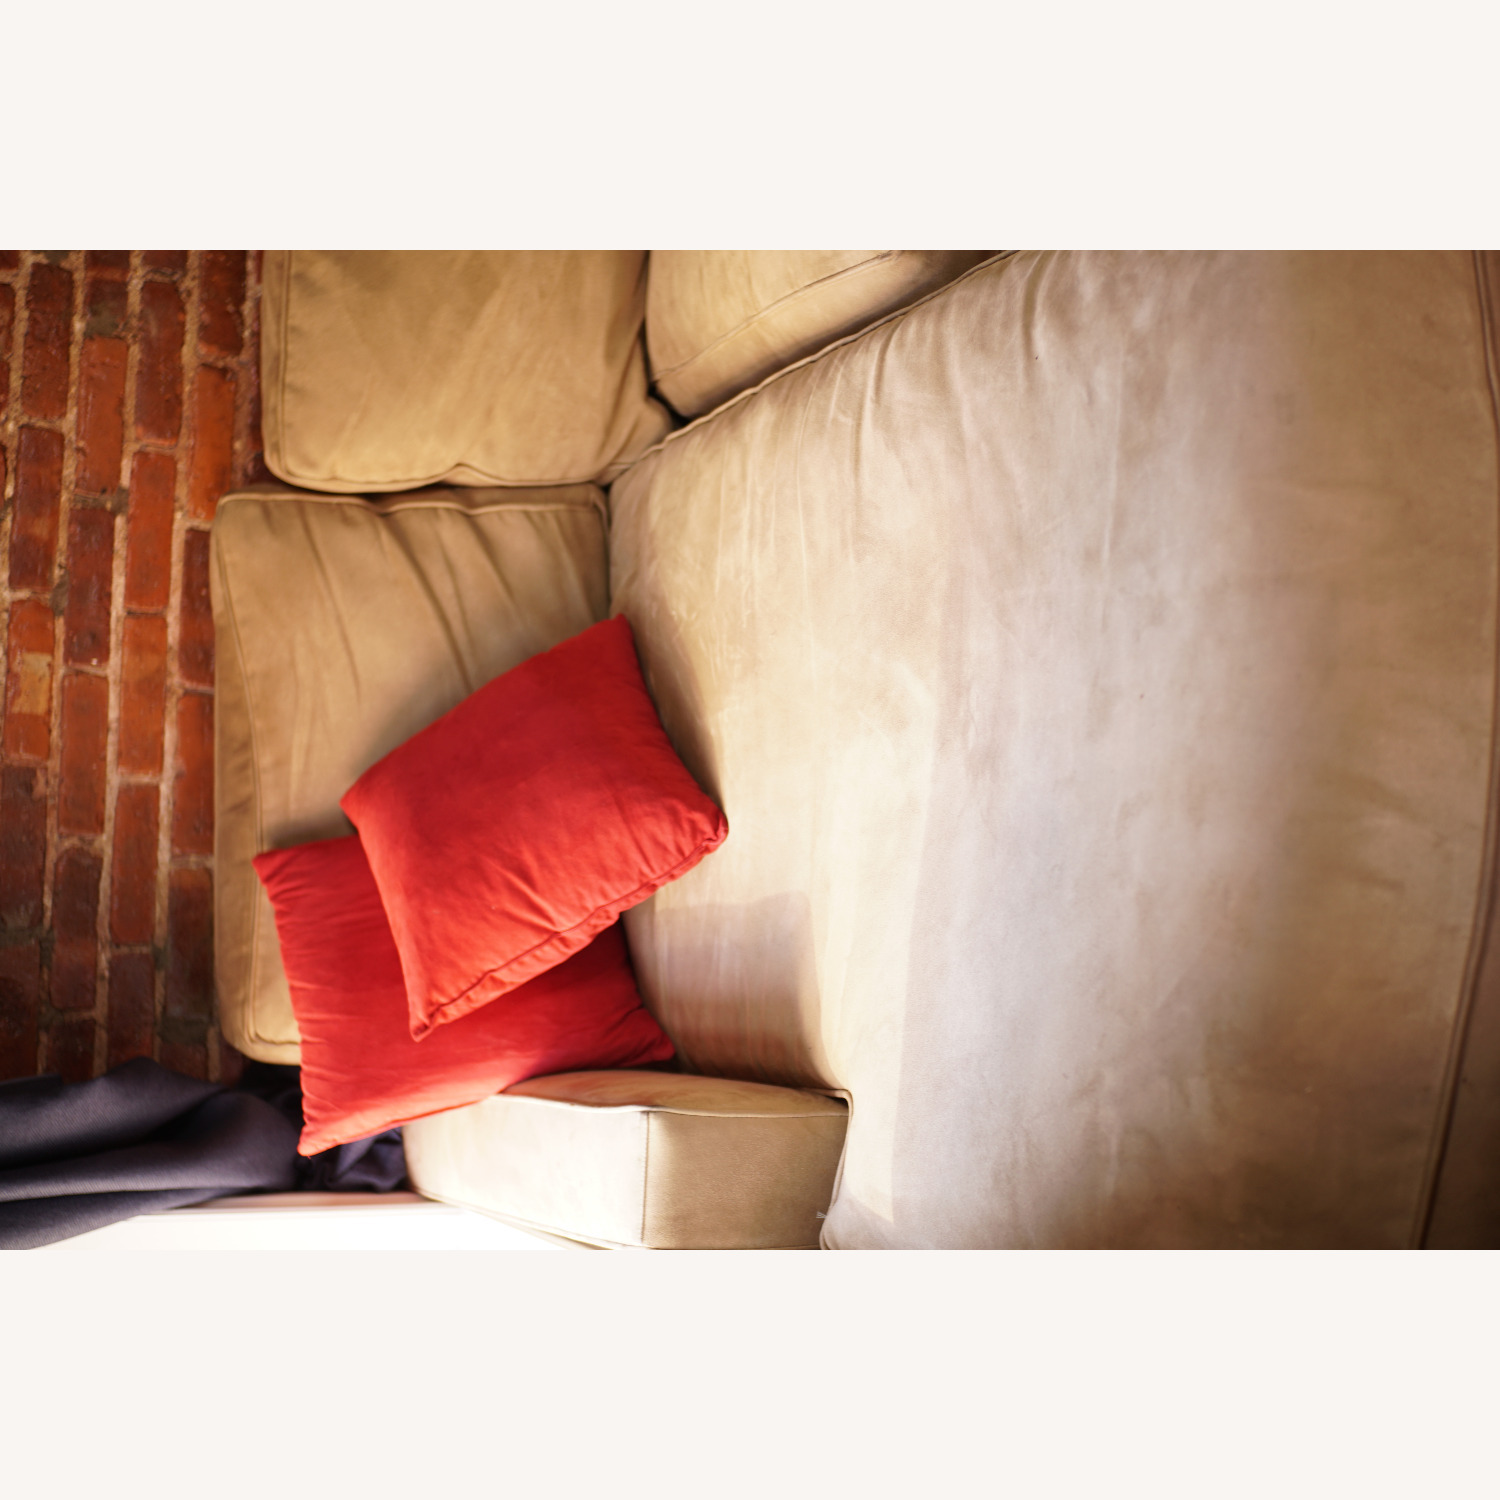 Medium Comfy Couch - image-4